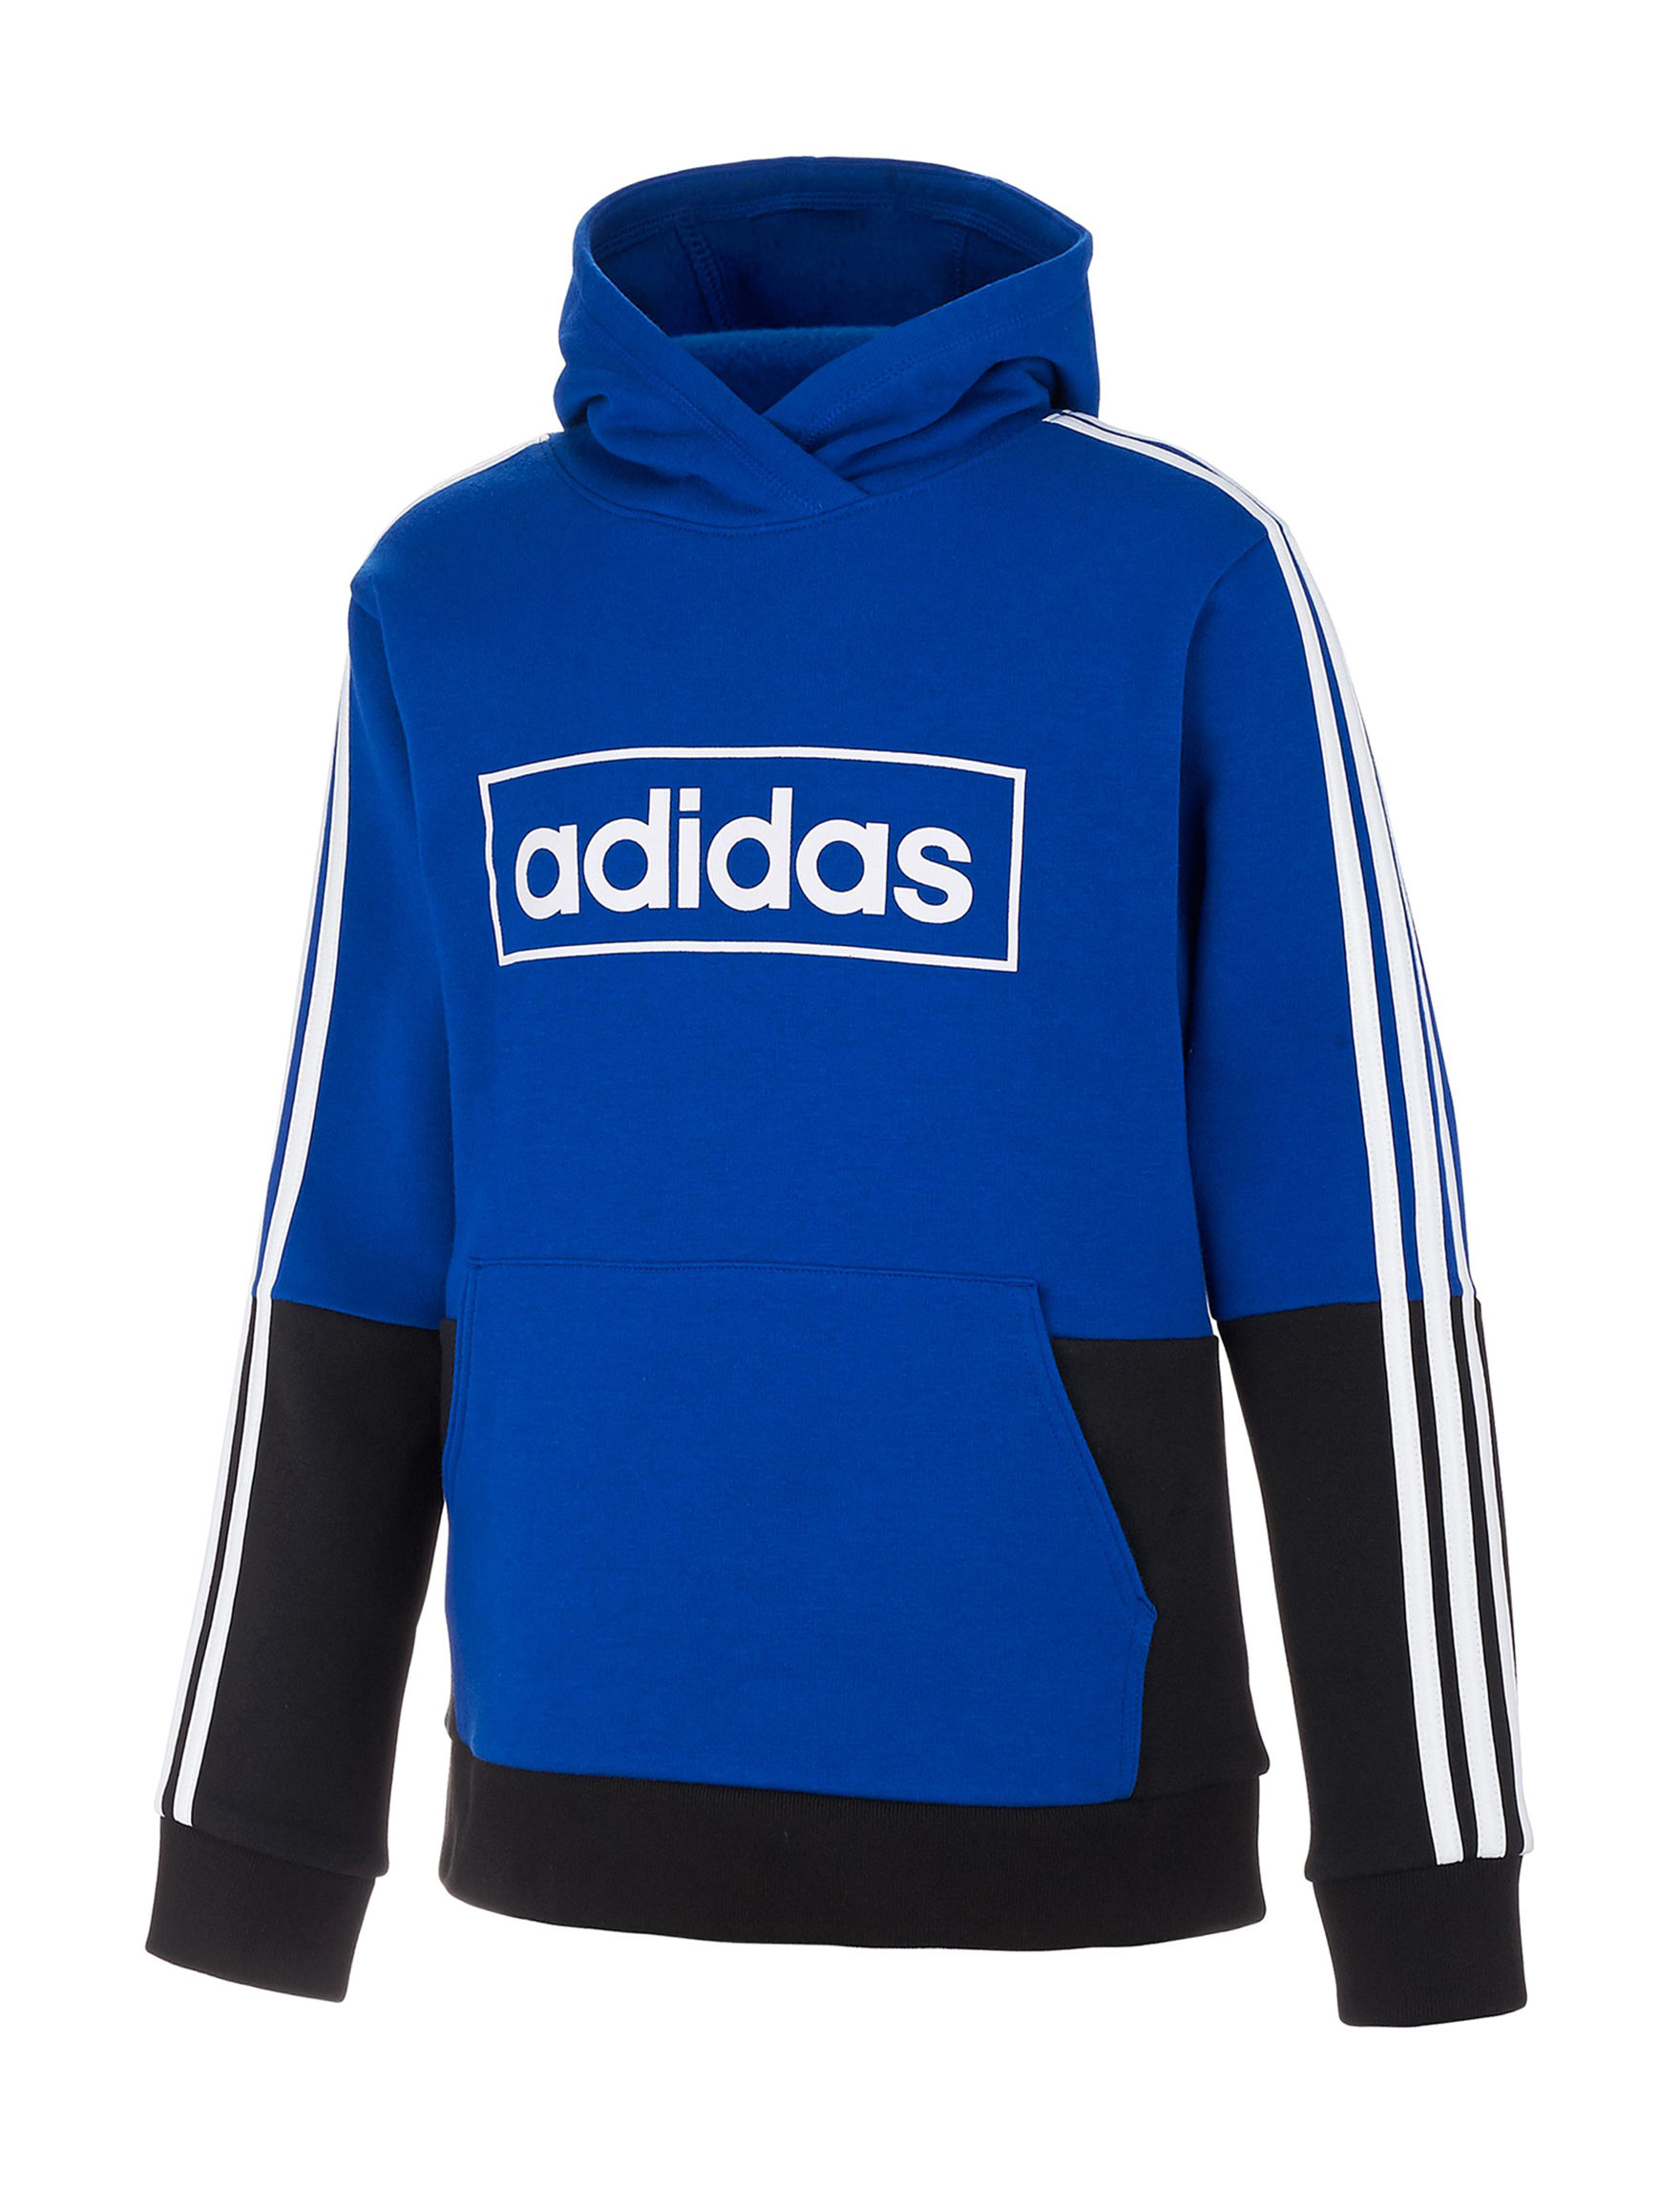 Adidas Royal Blue / Black